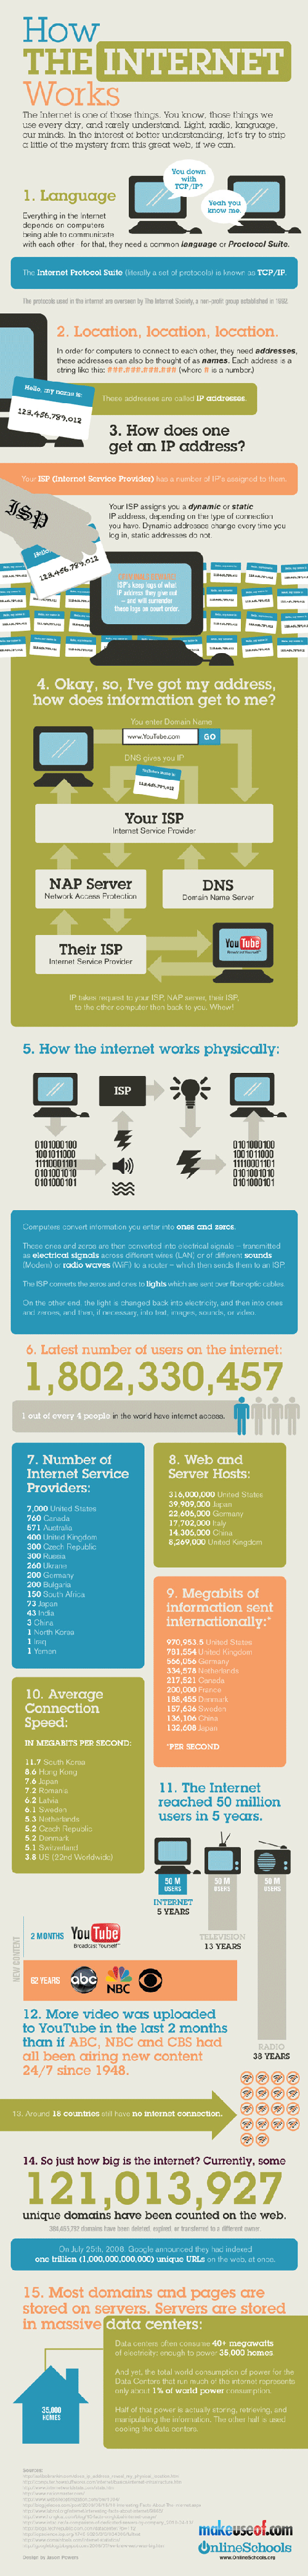 internet_infographic-smaller